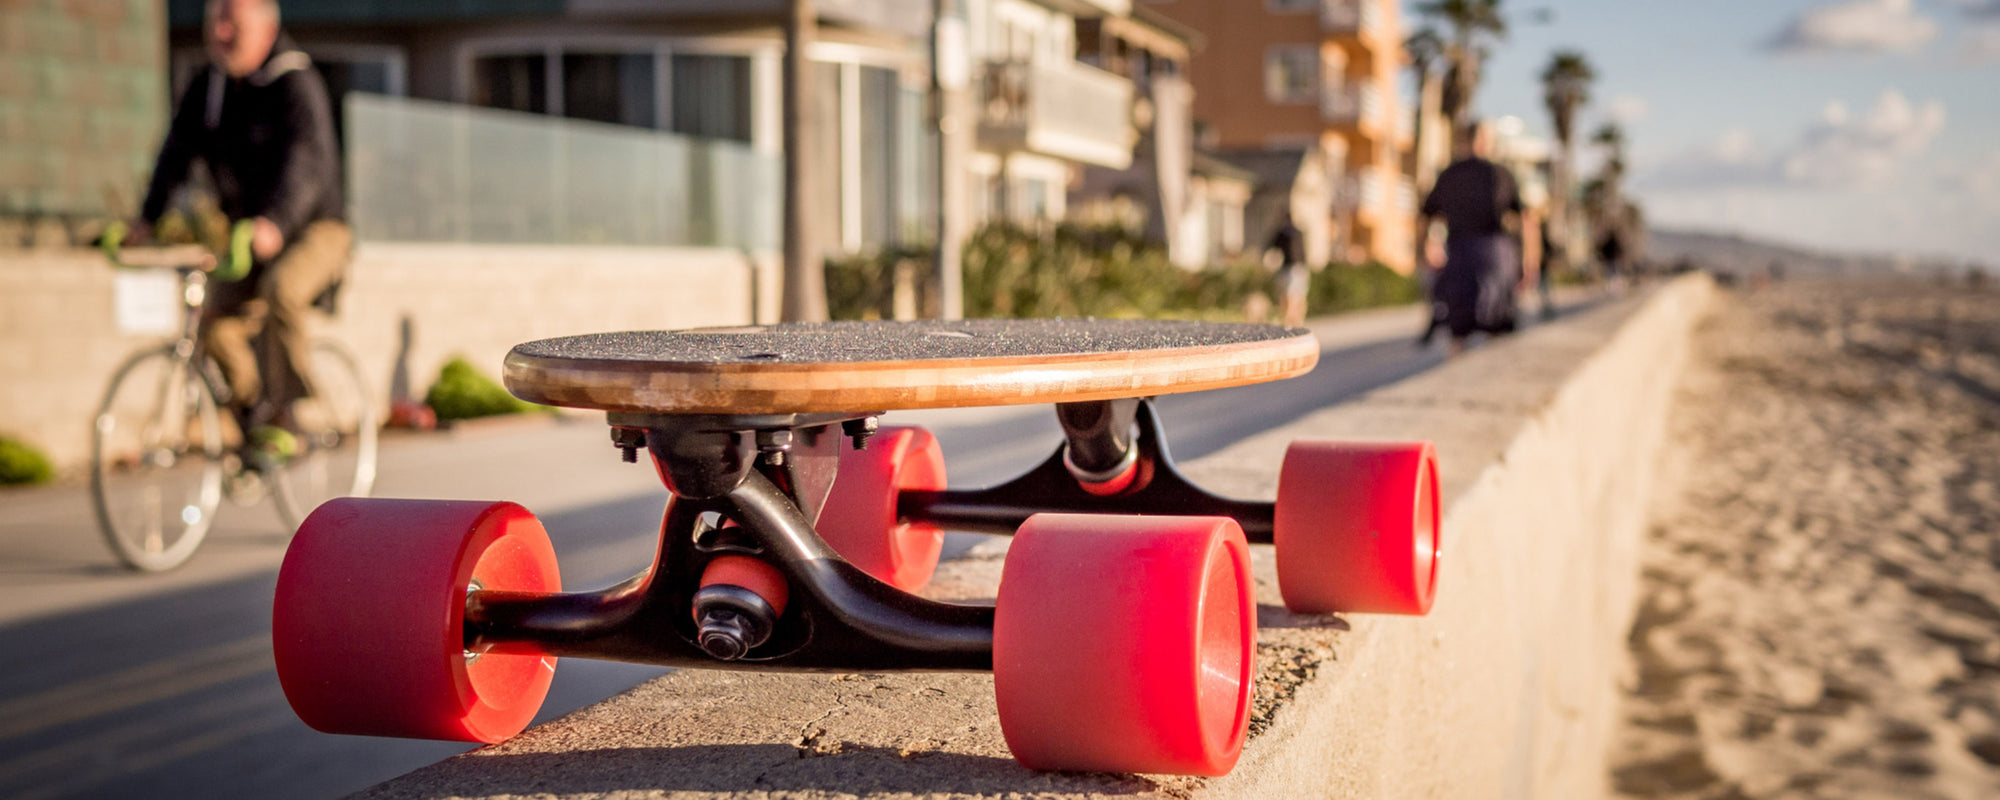 Eggboards Mini Longboard red - Skateboard Cruiser Beach Boardwalk